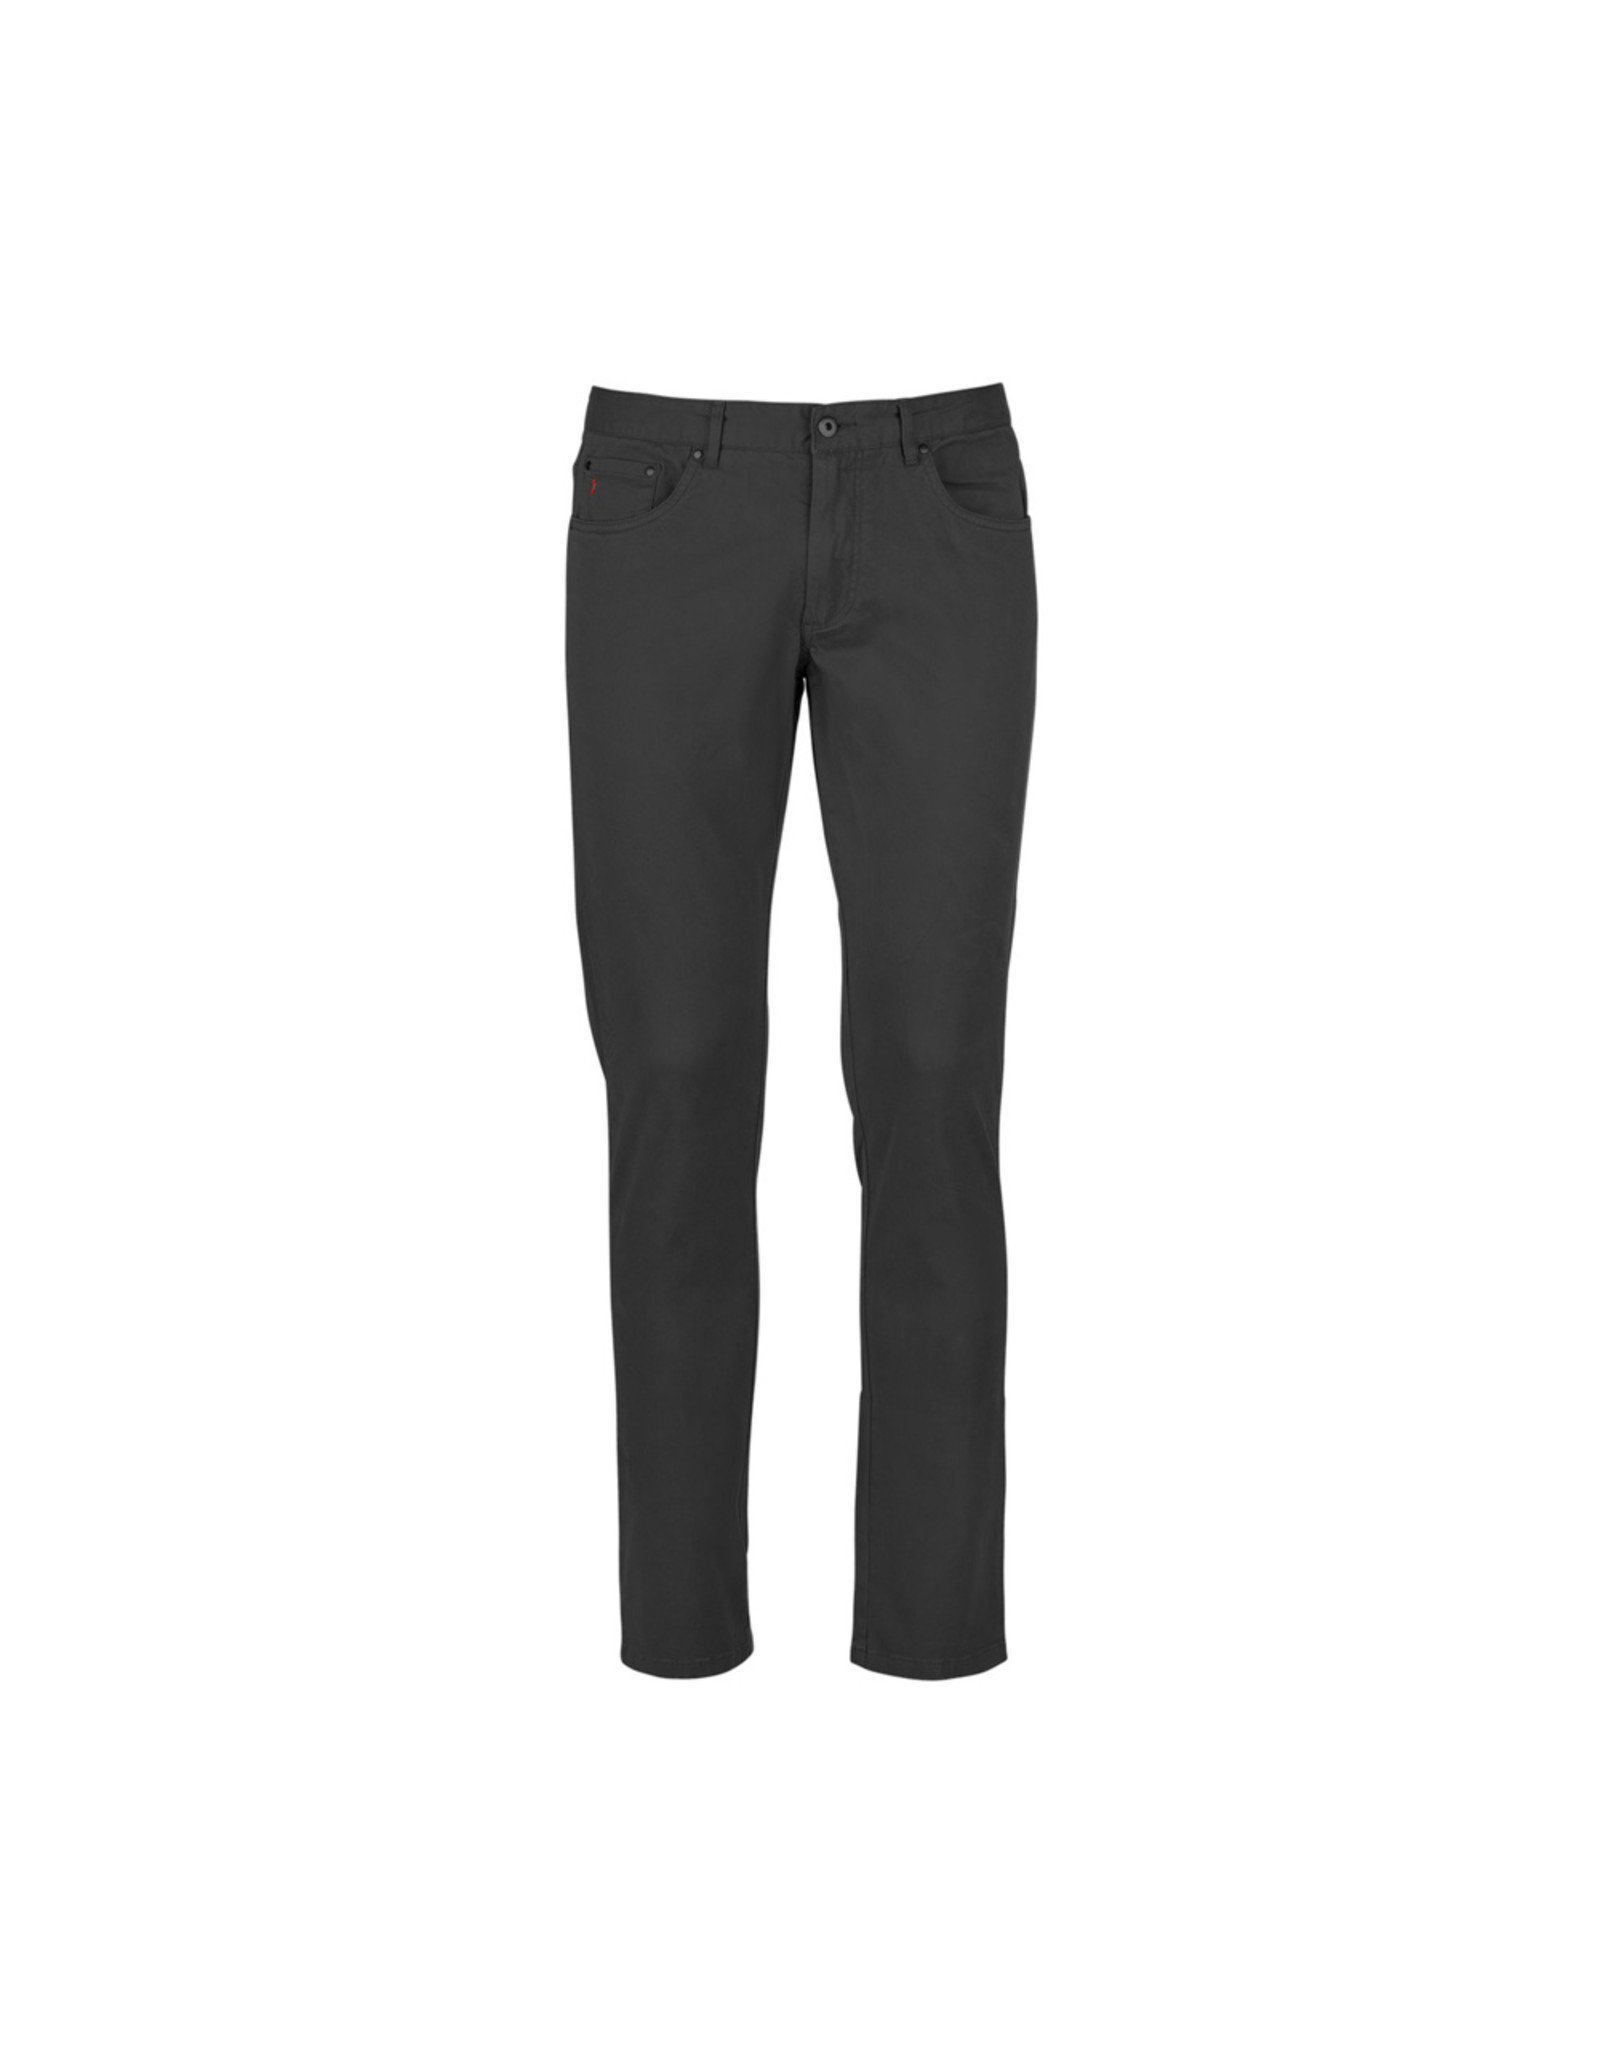 Slam Trousers B4 - Anthracite (171)